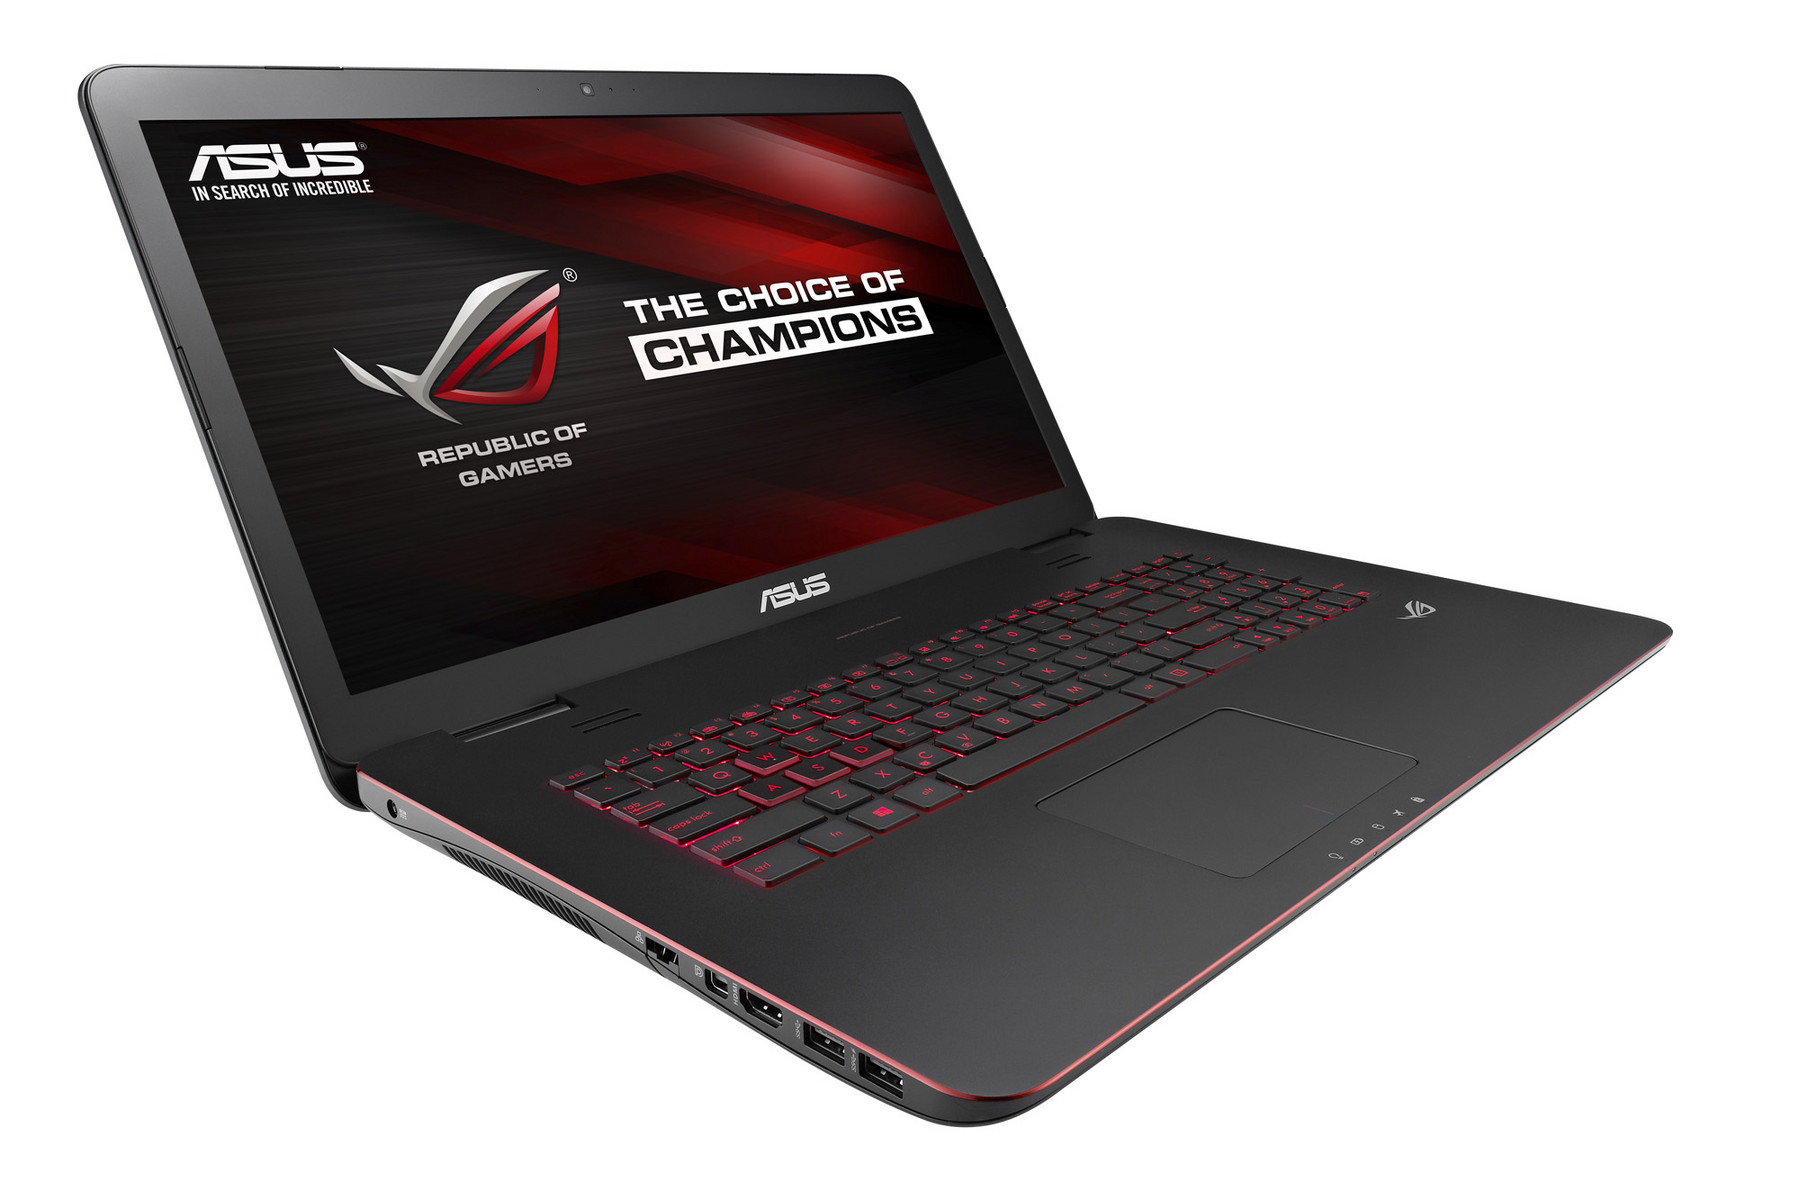 ASUS G771JW DRIVERS FOR WINDOWS